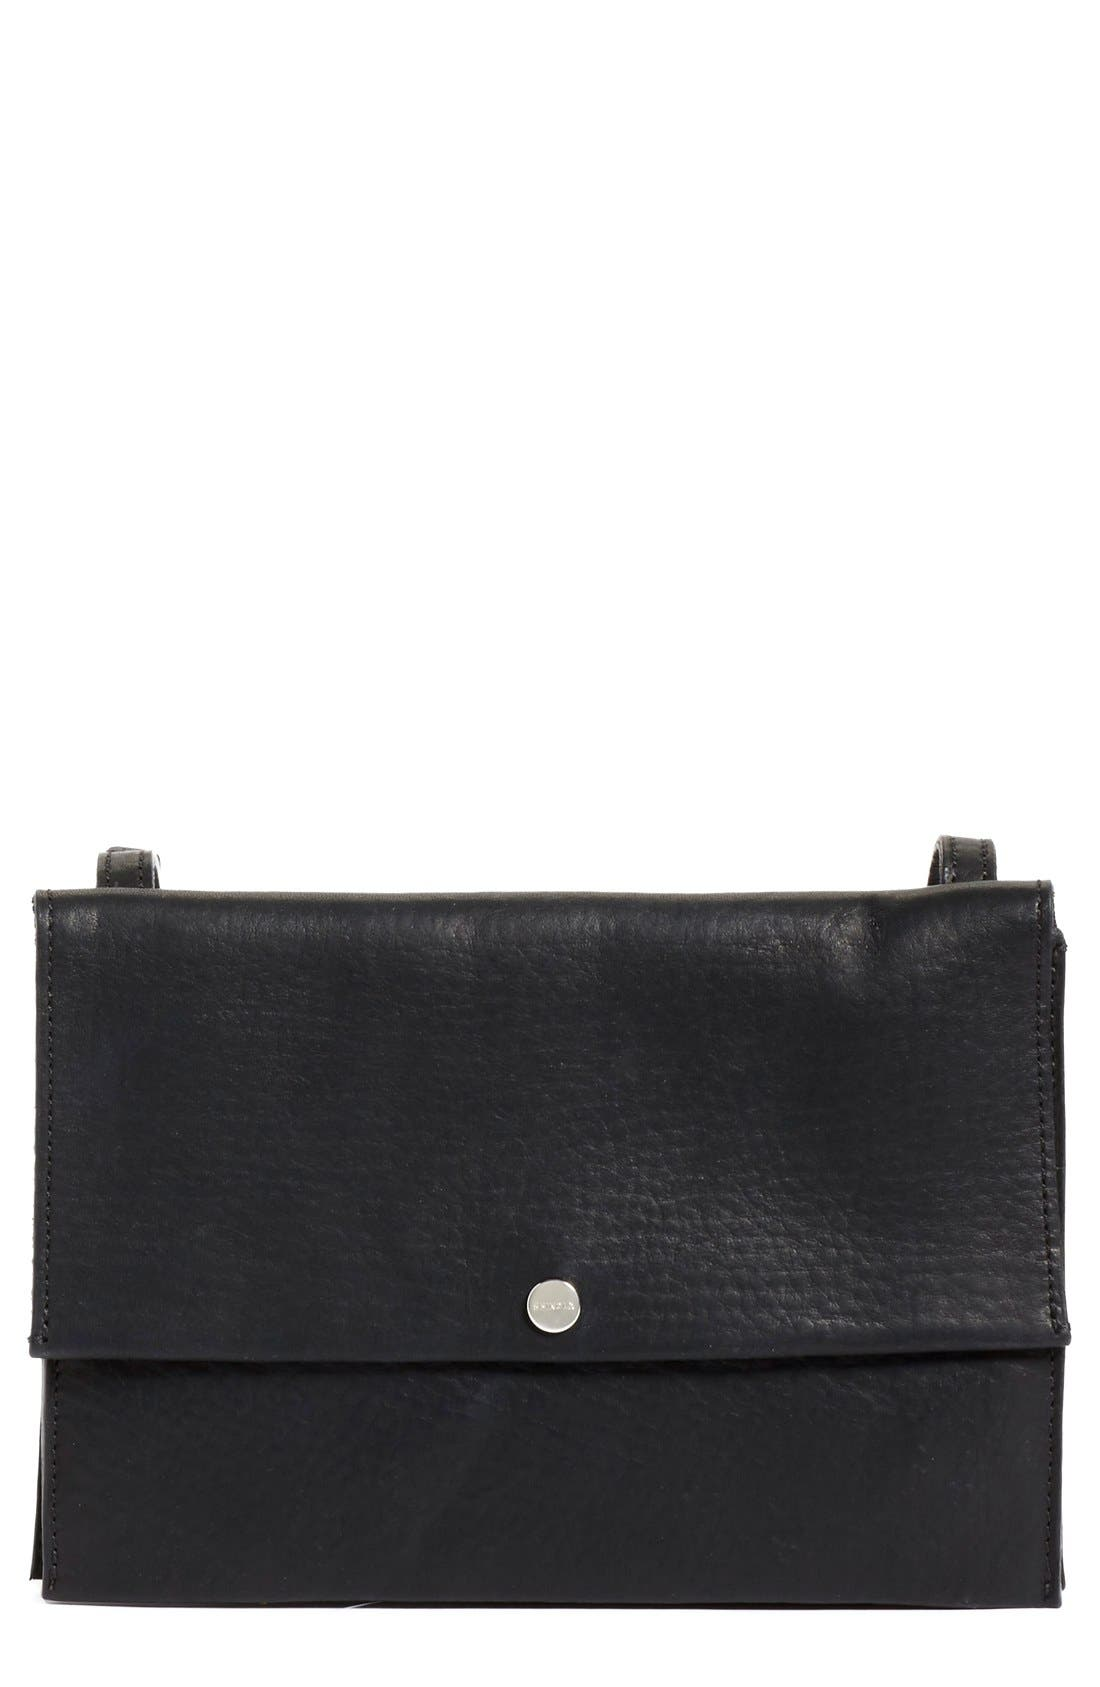 Crossbody Leather Bag,                         Main,                         color, Black